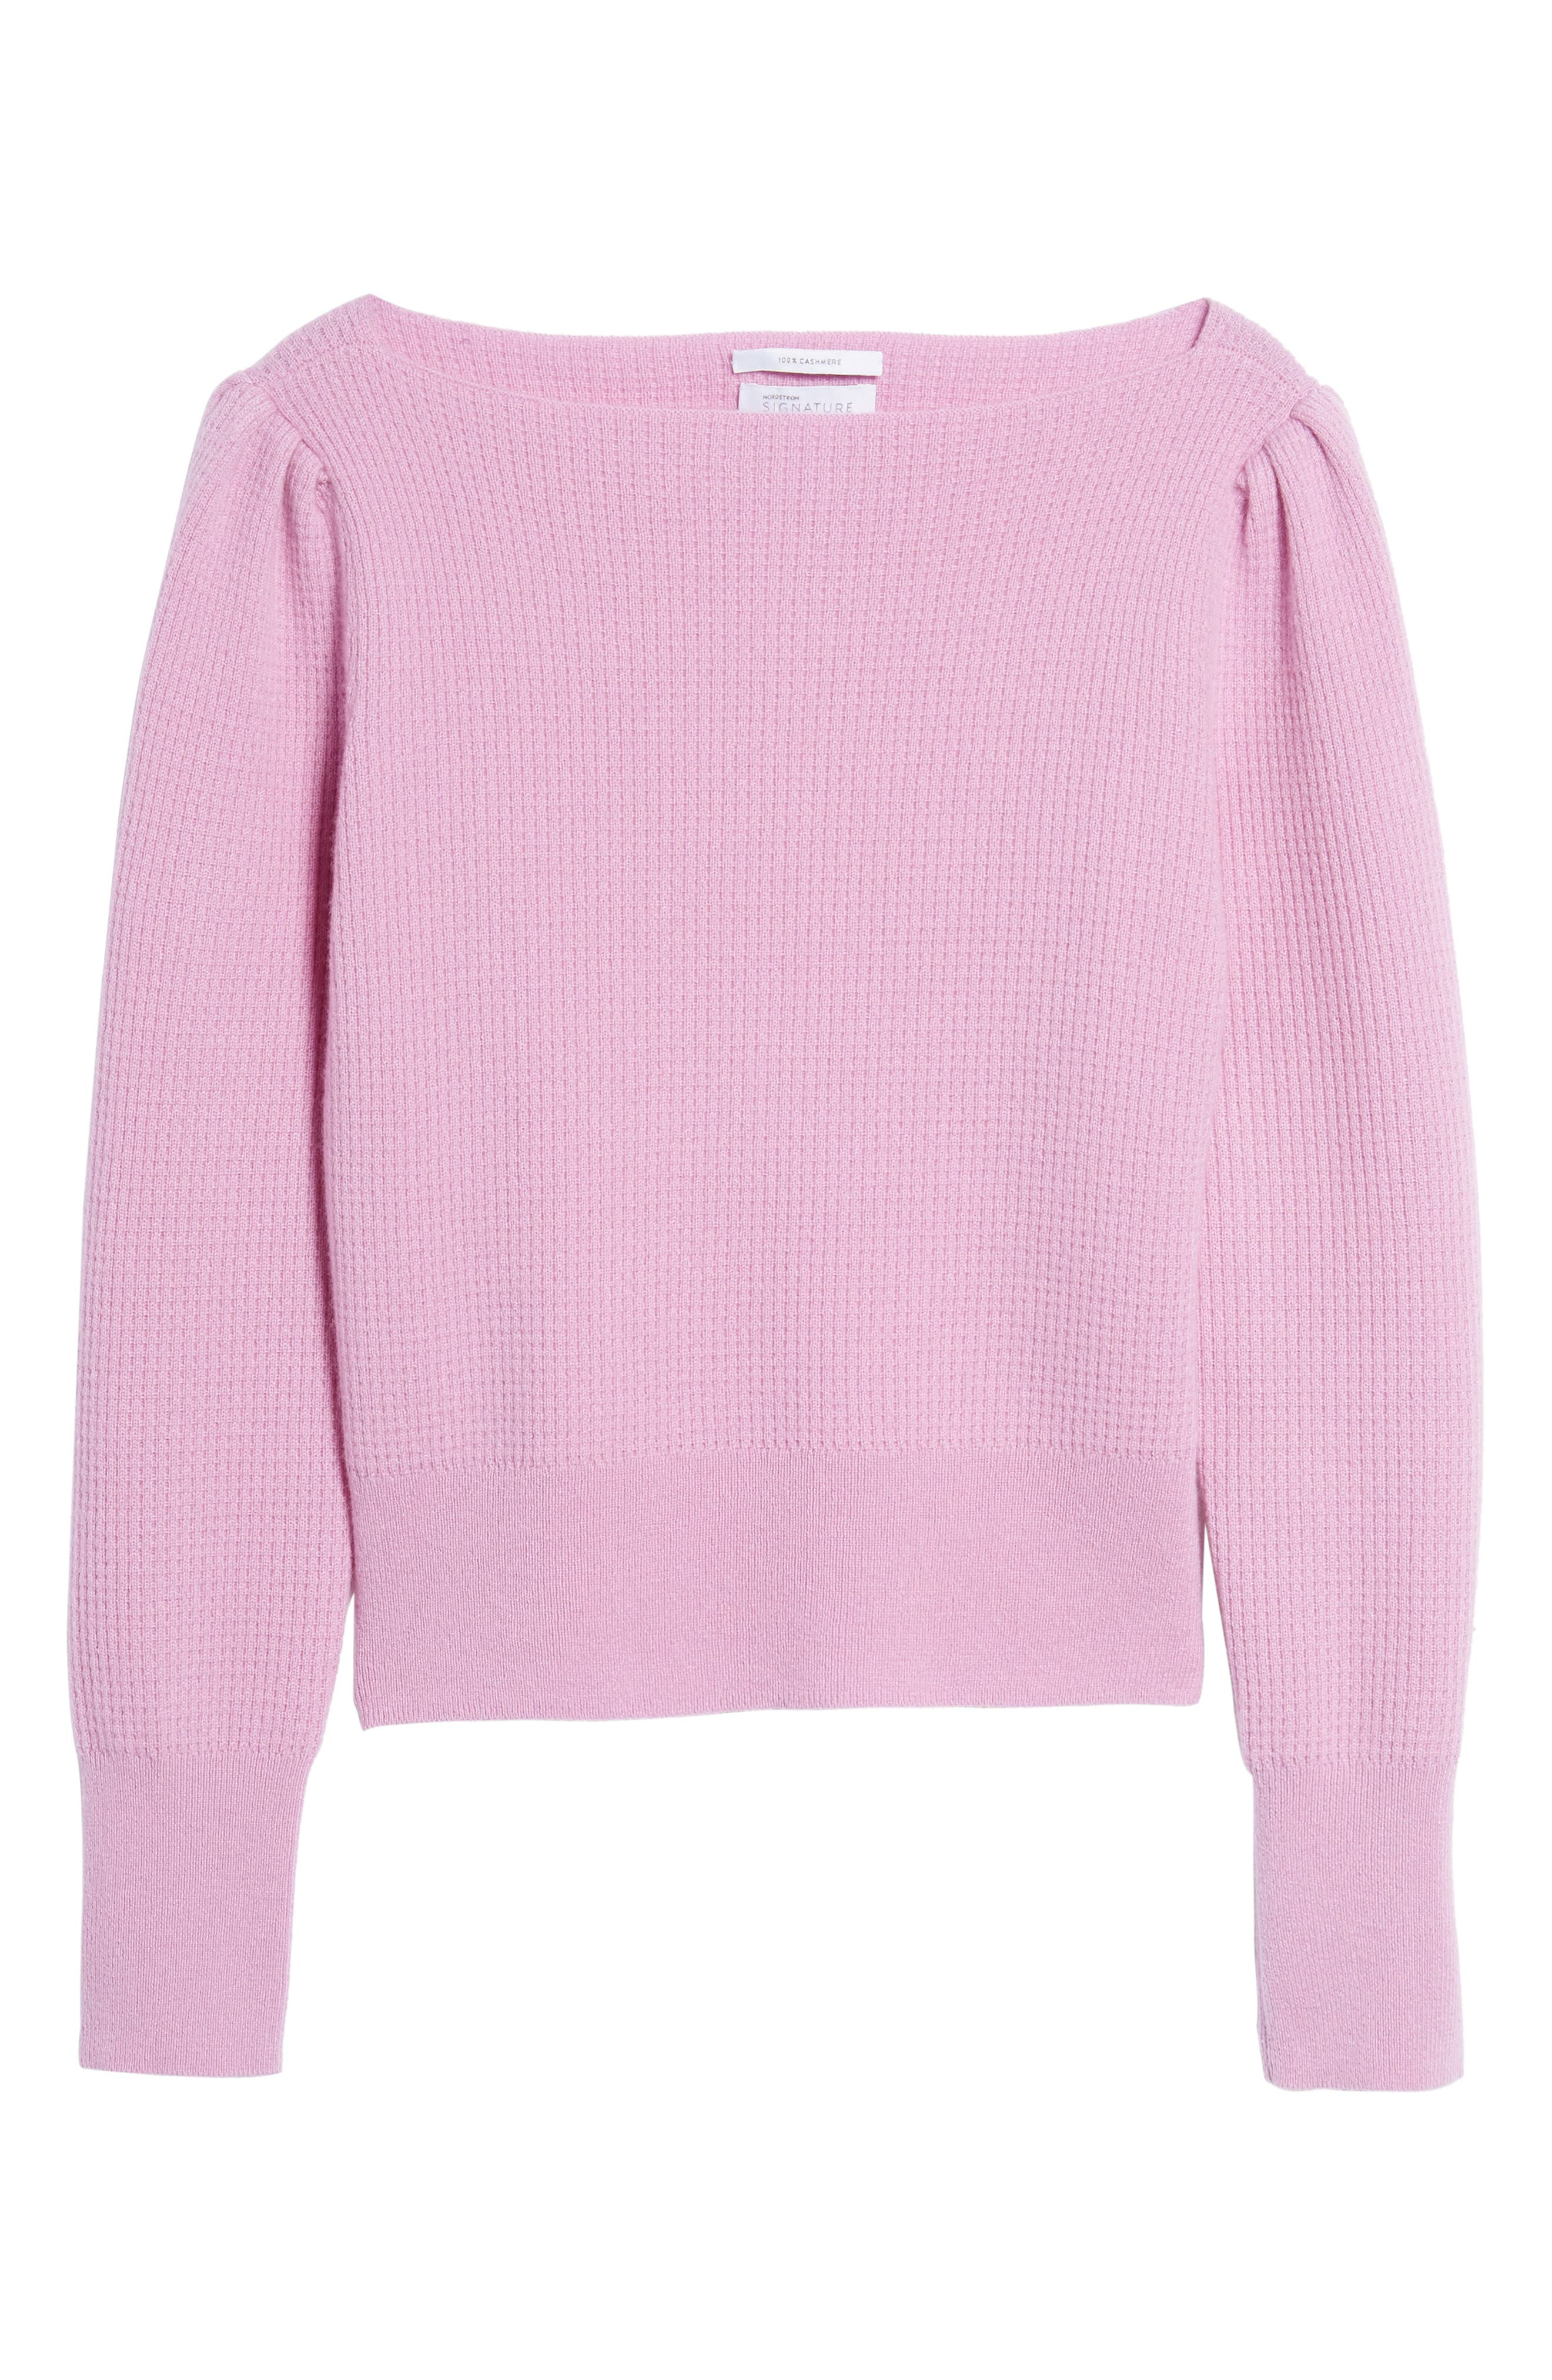 Waffle Stitch Cashmere Sweater,                             Alternate thumbnail 6, color,                             Pink Gale